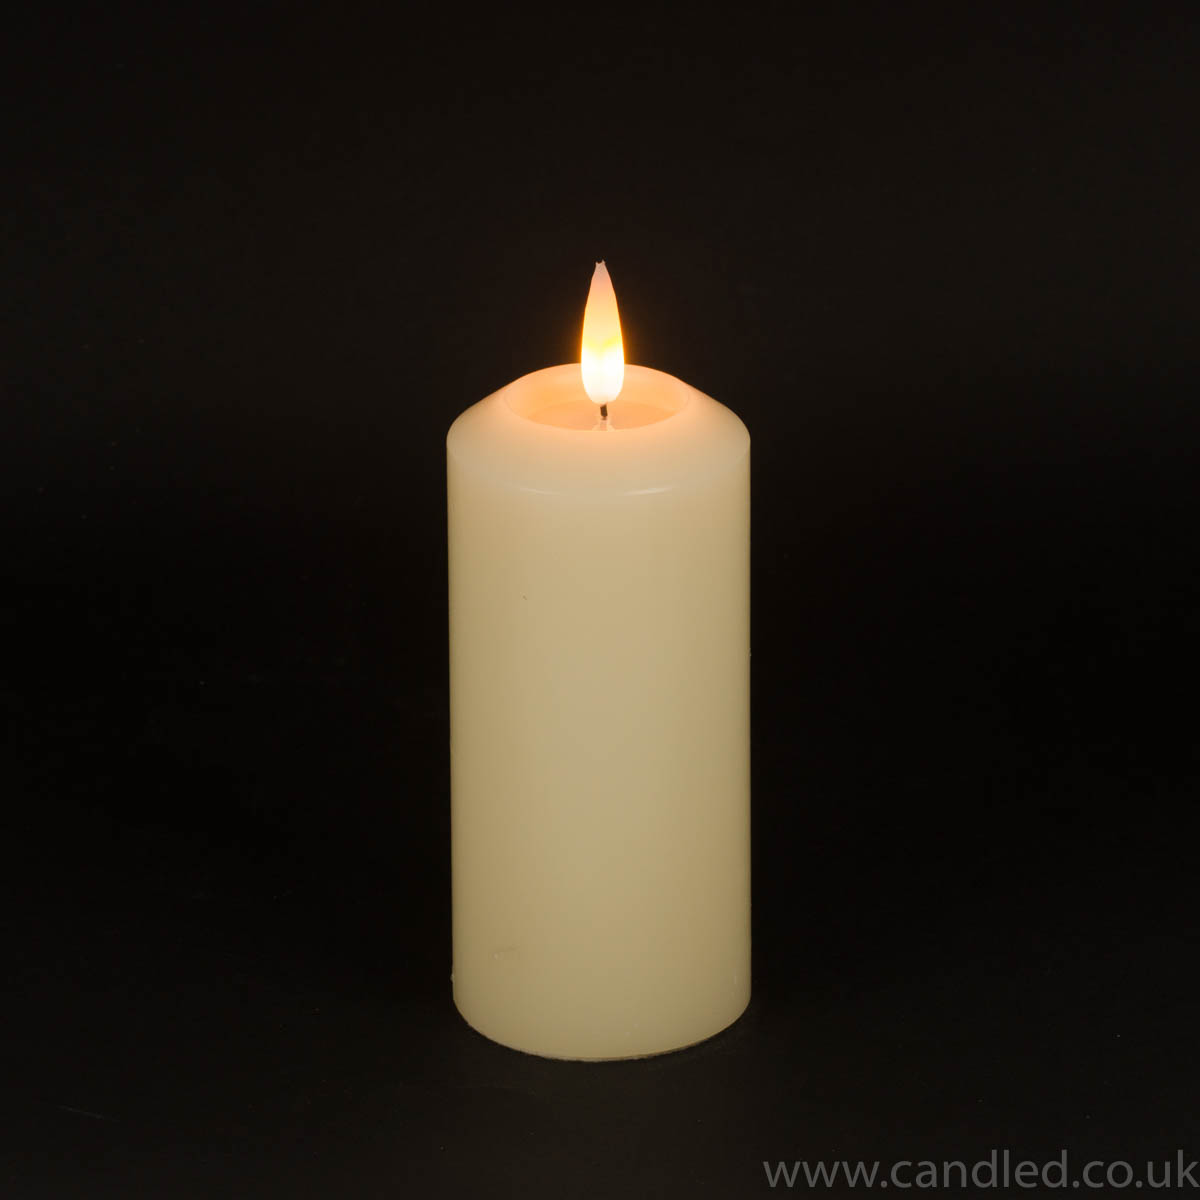 Candled-Pillar-LED-Candle-6-inch